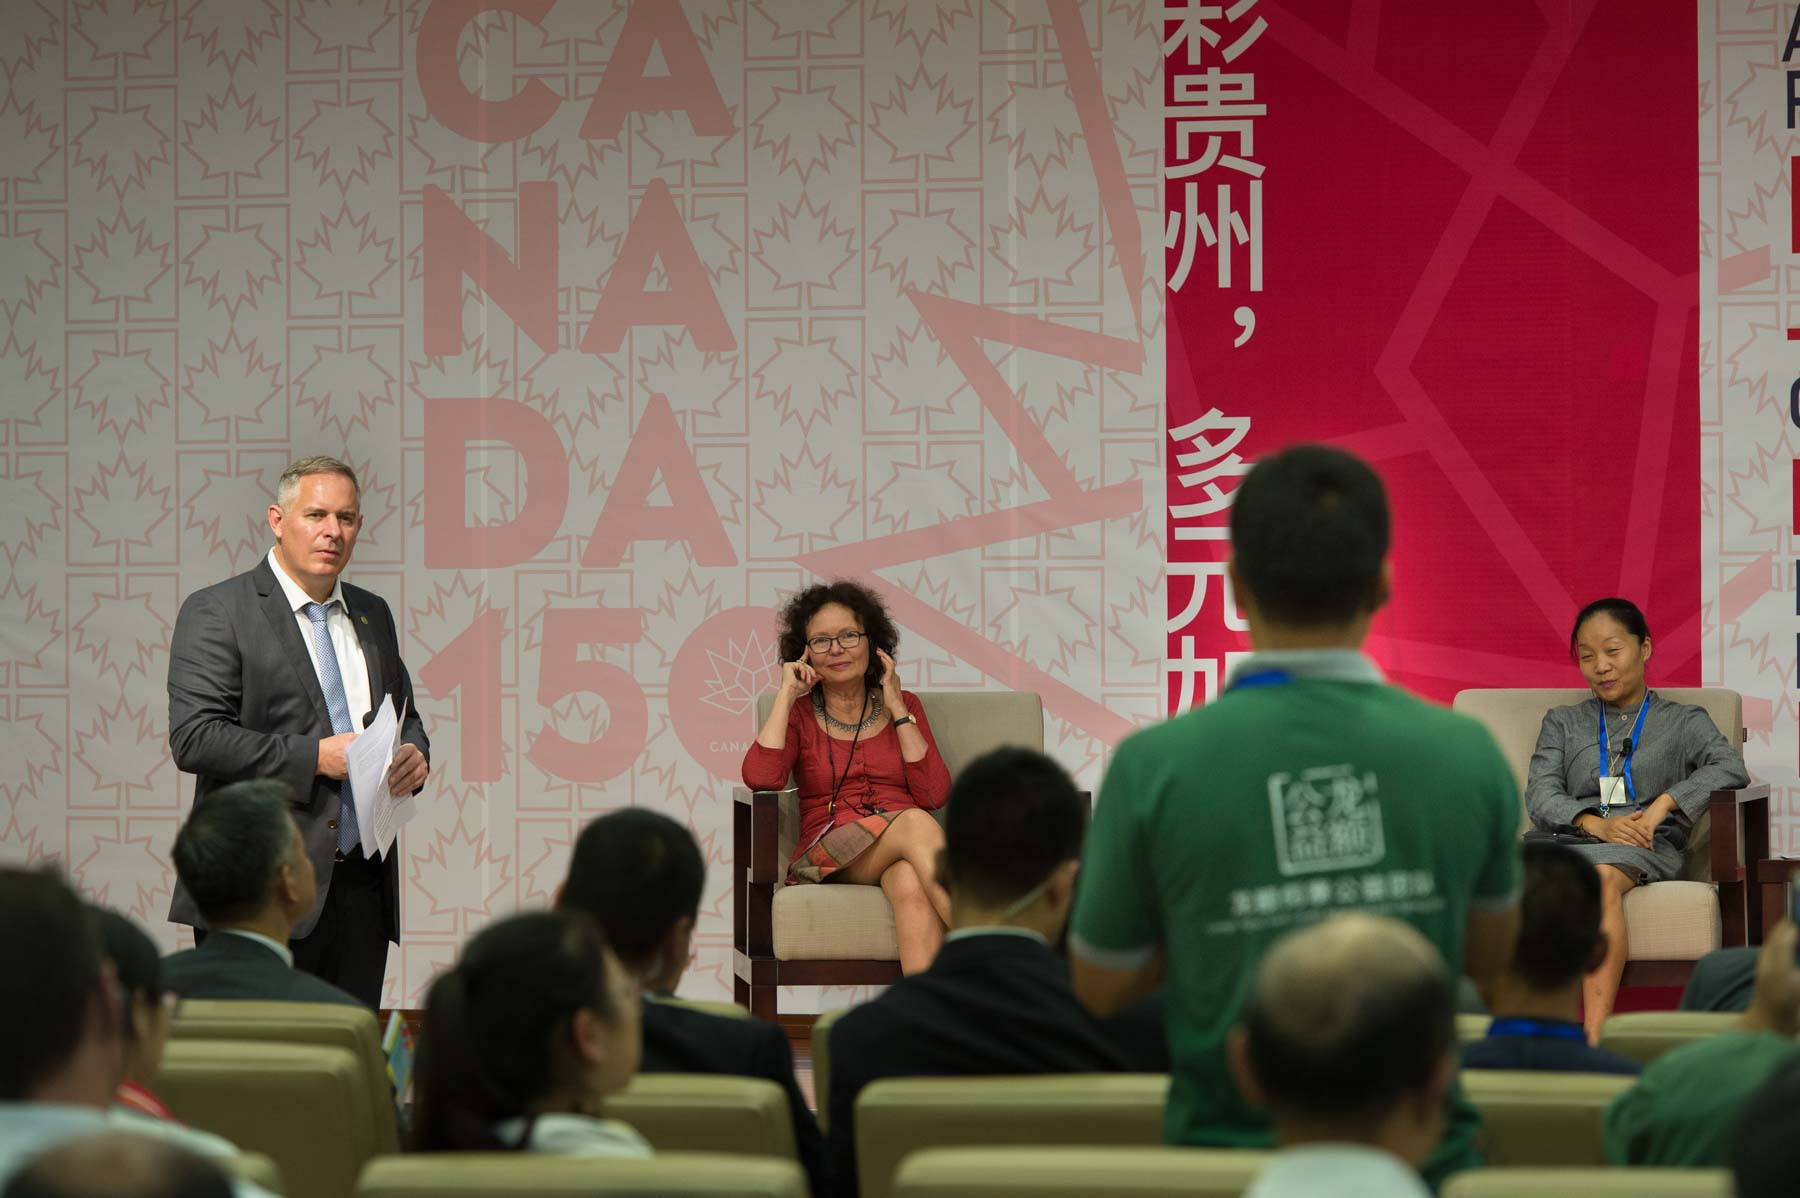 Manon Barbeau, Founder, Director General and Artistic Director, Wapikoni Mobile and Philippe Rheault, Consul General of Canada to Chongquing took questions from members of the audience.